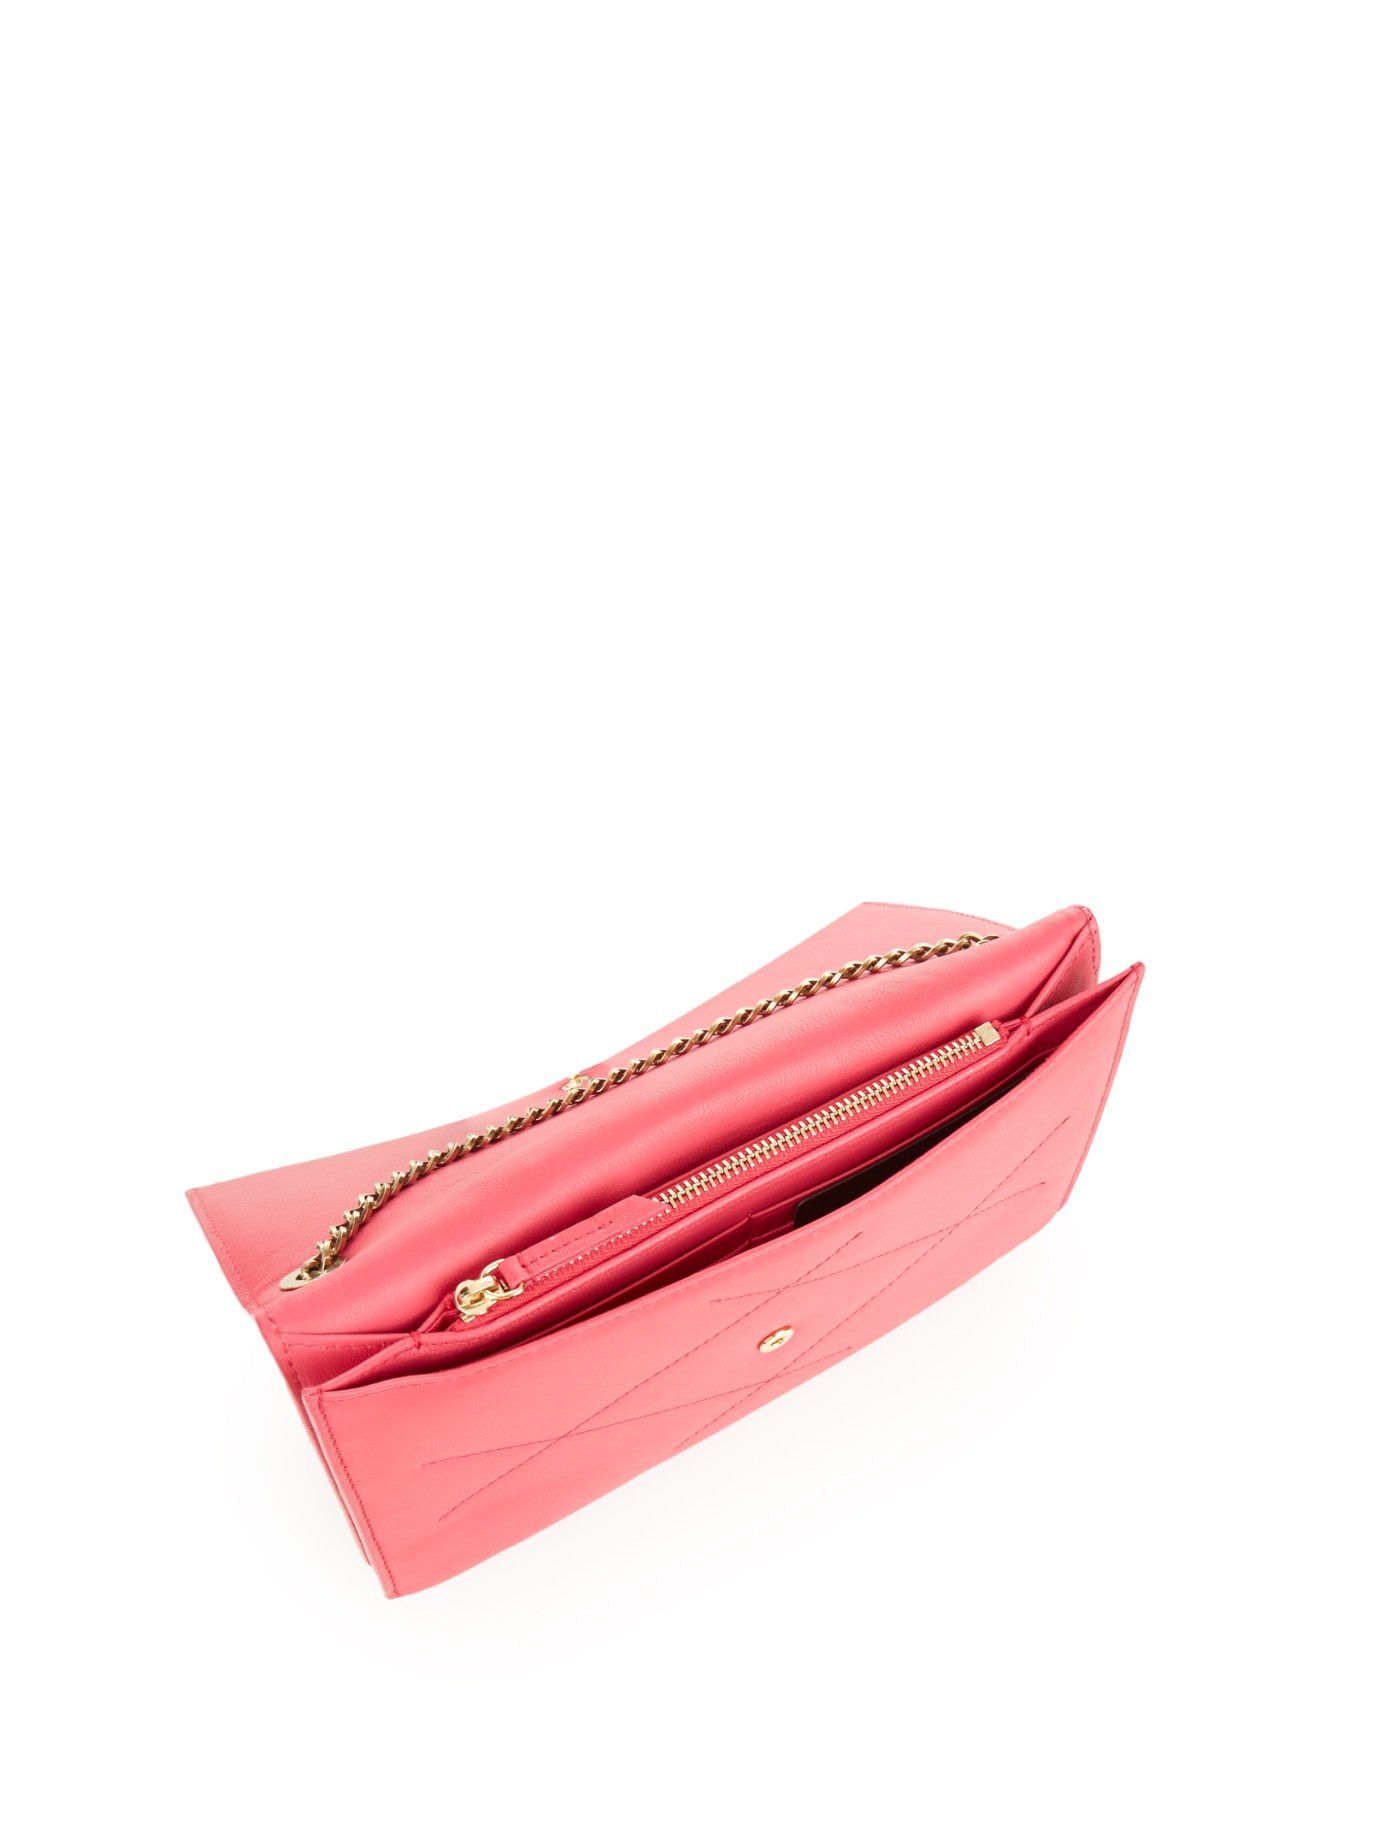 Lanvin Sugar Quilted Cross-body Bag in Pink